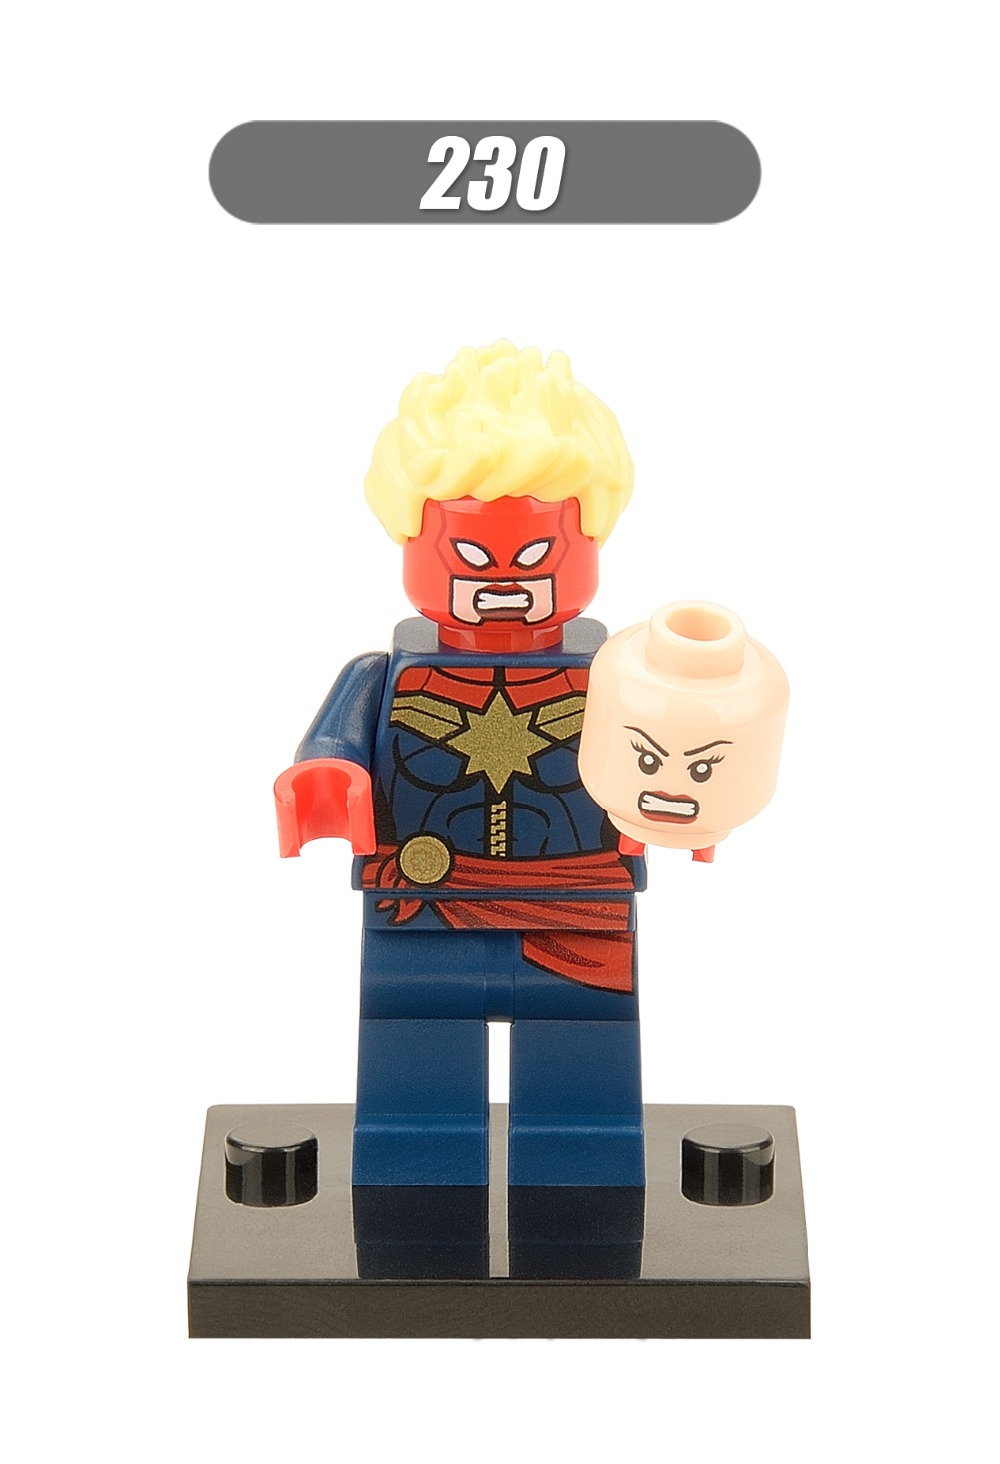 XH 230 Building Blocks Super Heroes <font><b>Avengers</b></font> Minifigures <font><b>Red</b></font> <font><b>Skull</b></font> Bricks <font><b>Action</b></font> <font><b>Assemble</b></font> Model Children Bricks Mini <font><b>Figures</b></font> Toy